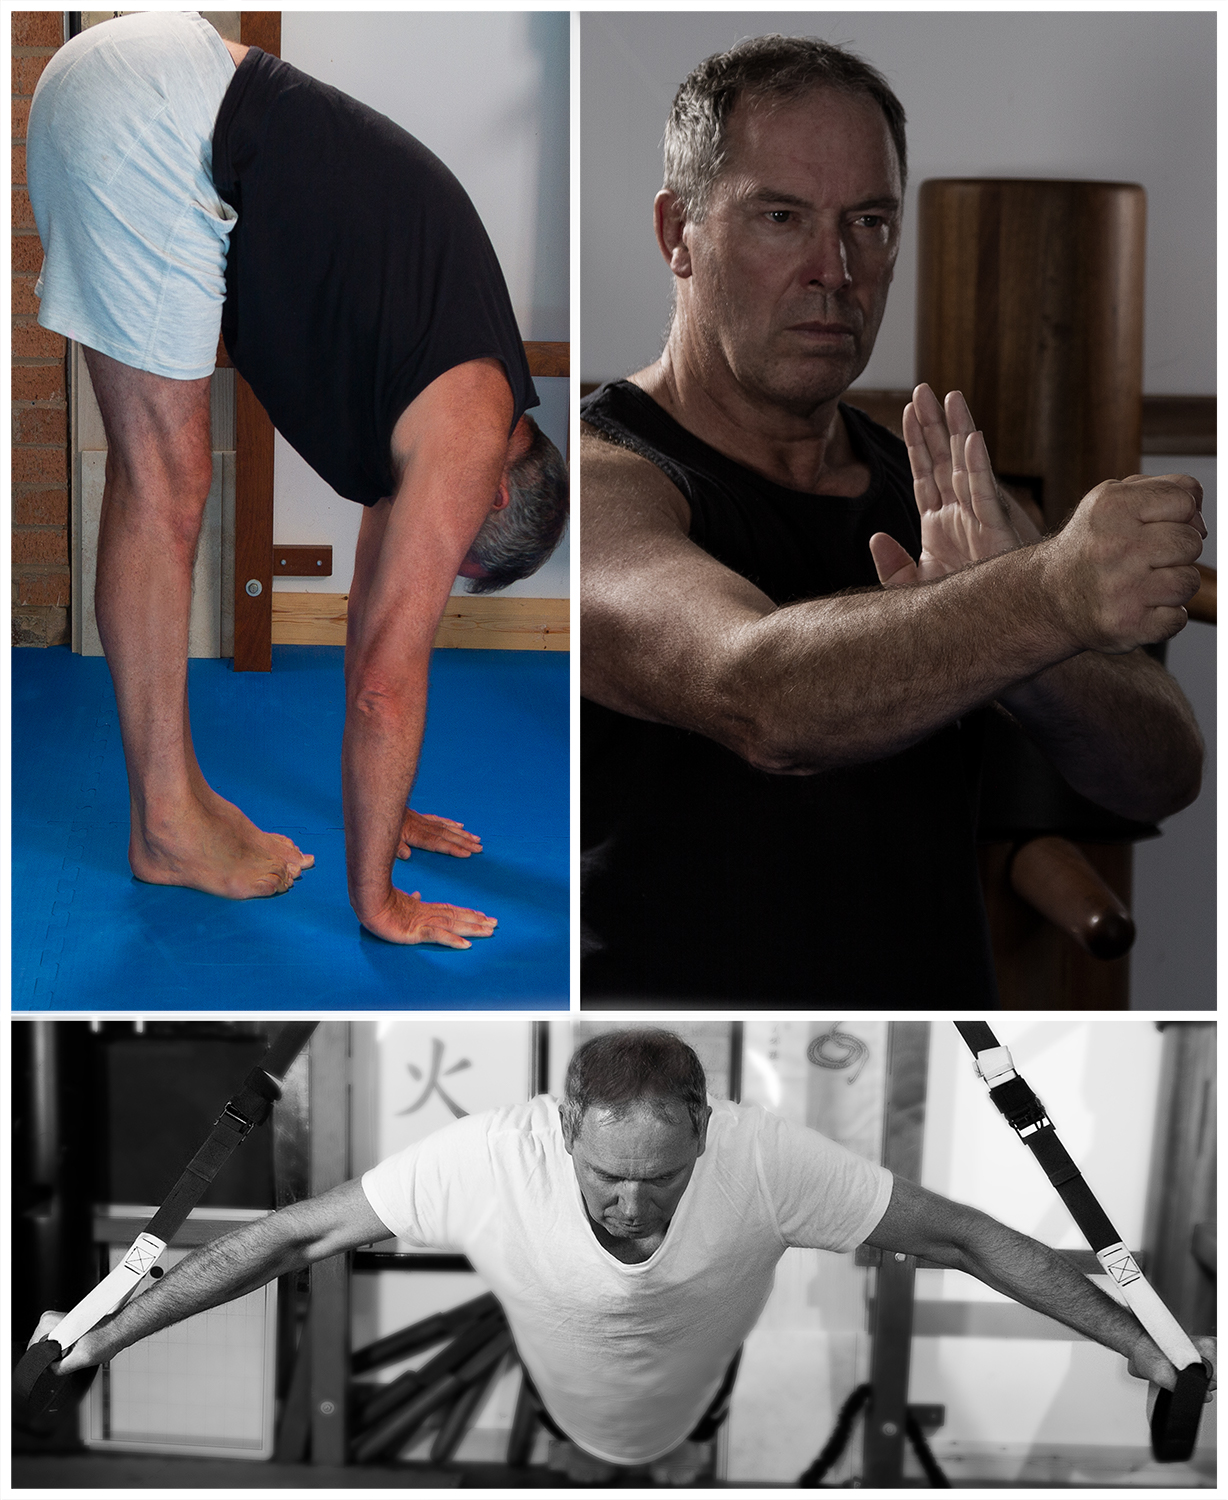 James Sinclar is the Founder and Chief Instructor of the prestigious UK Wing Chun Kung Fu Association. he founded the group on 17th October 1985 and the it has grown form strength to strength. It still produces the leading Wing Chun teachers and practitioners.